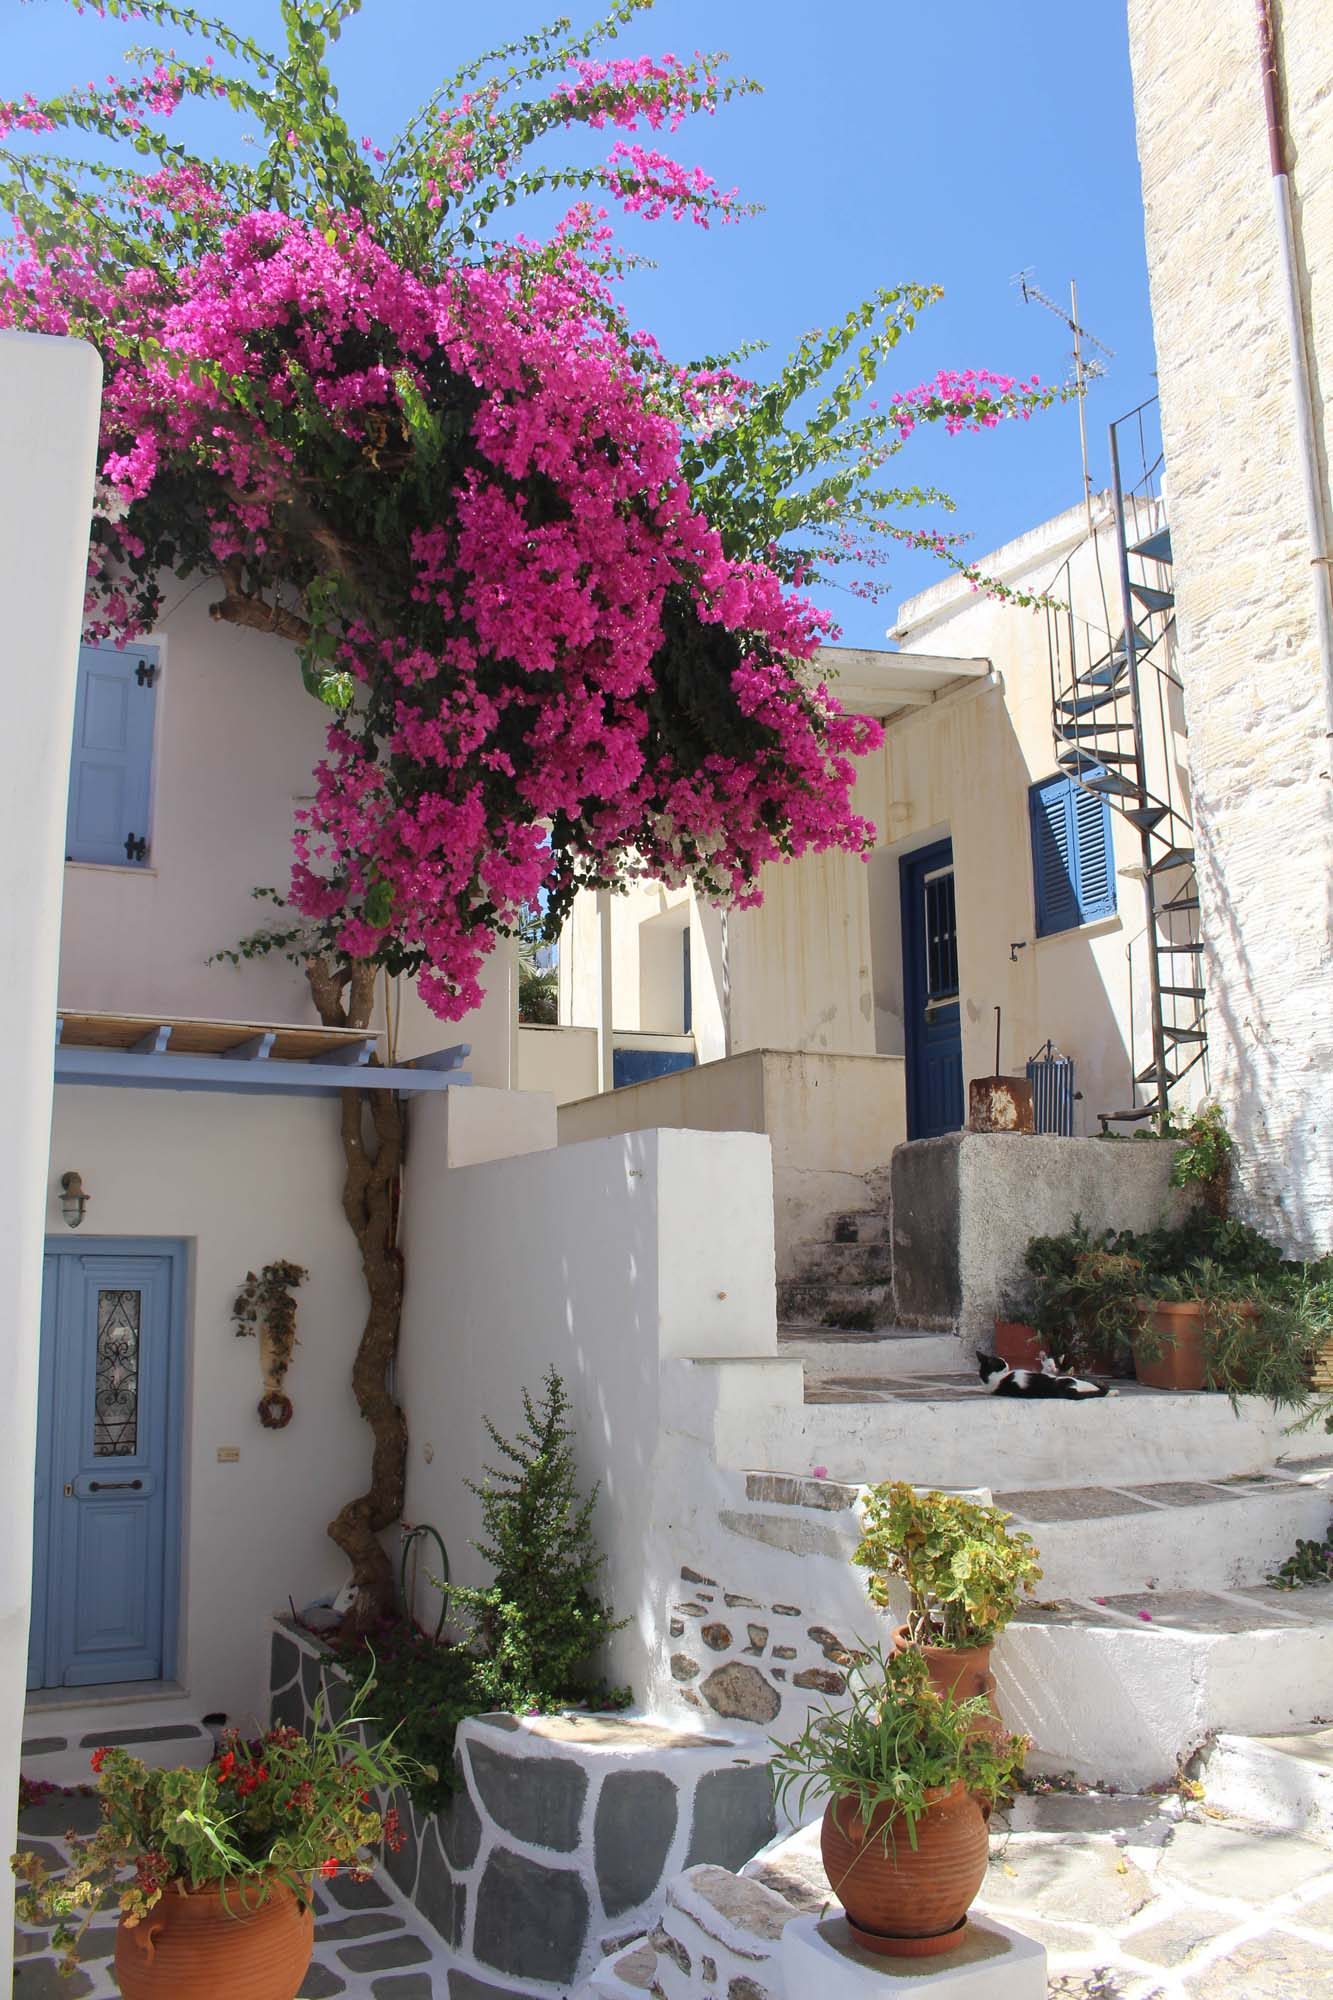 greece-paros-travel-linstantflo-4-sur-35